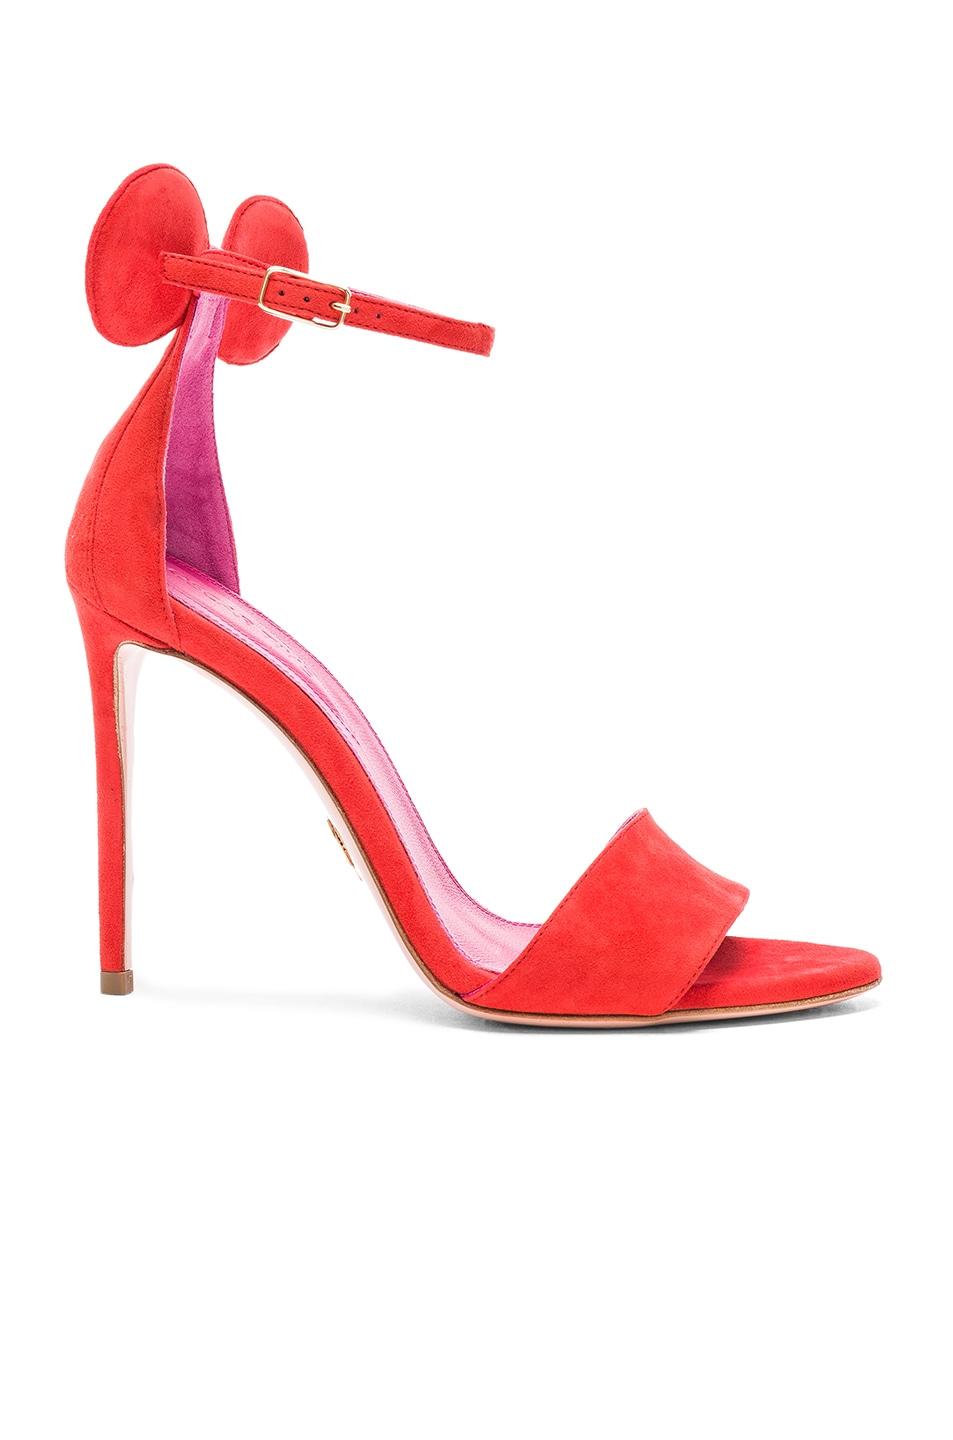 Image 1 of Oscar Tiye Suede Minnie Sandals in Red Suede